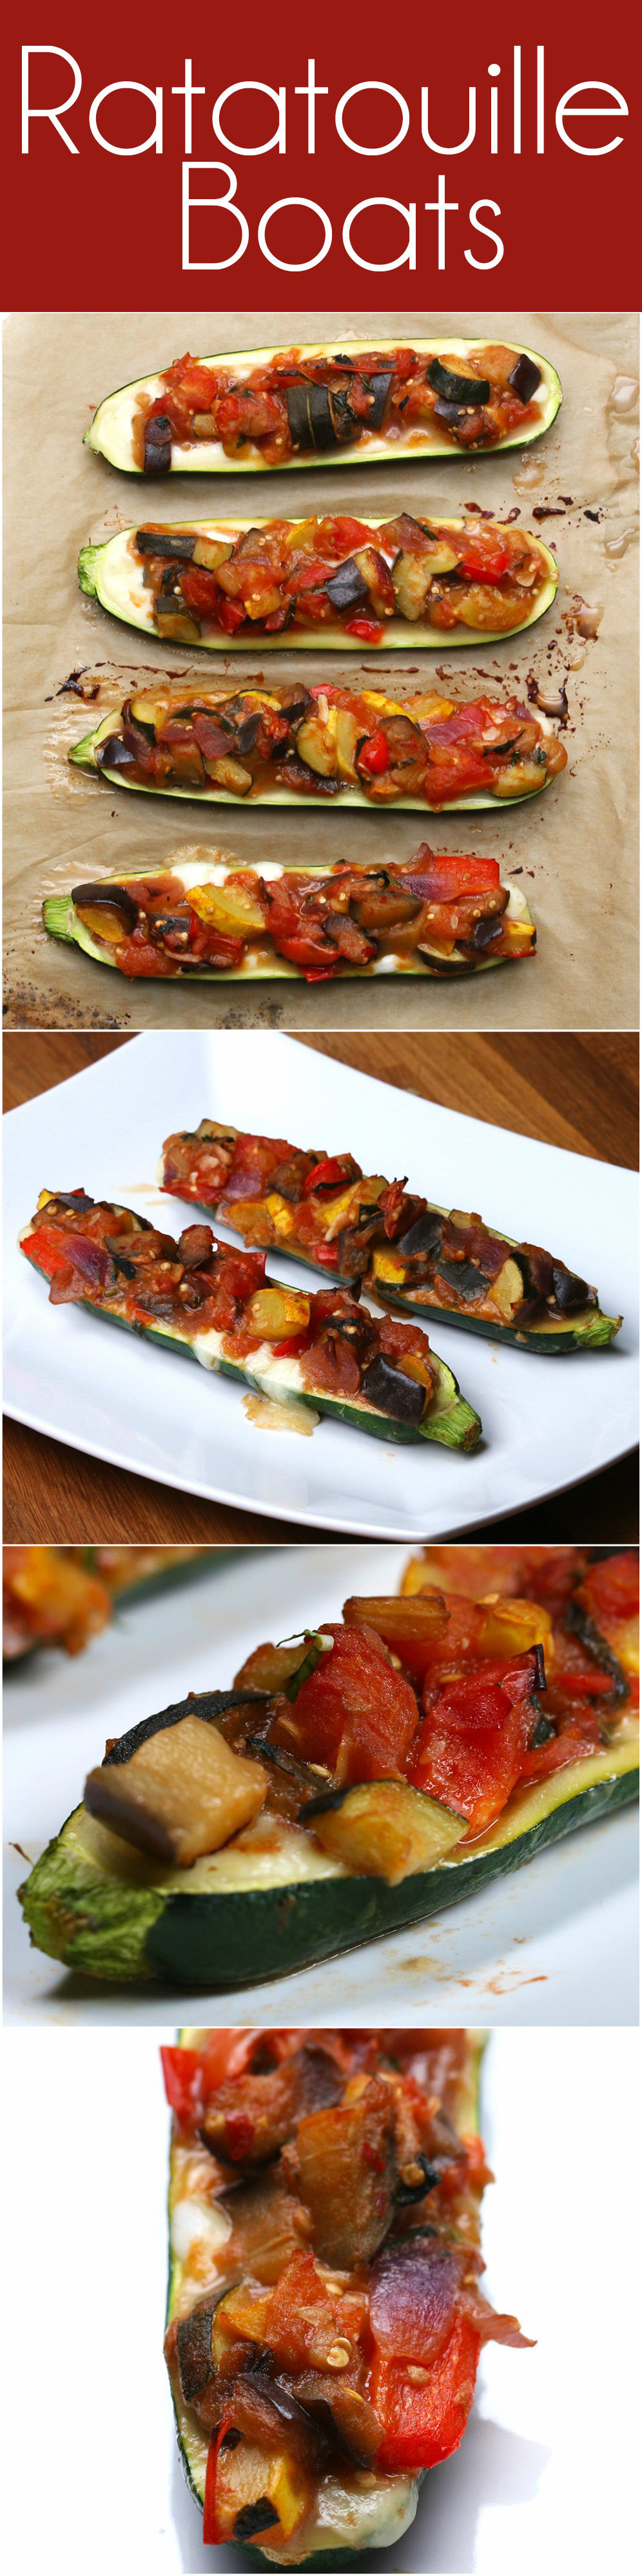 These Ratatouille Boats Are Just A Delight